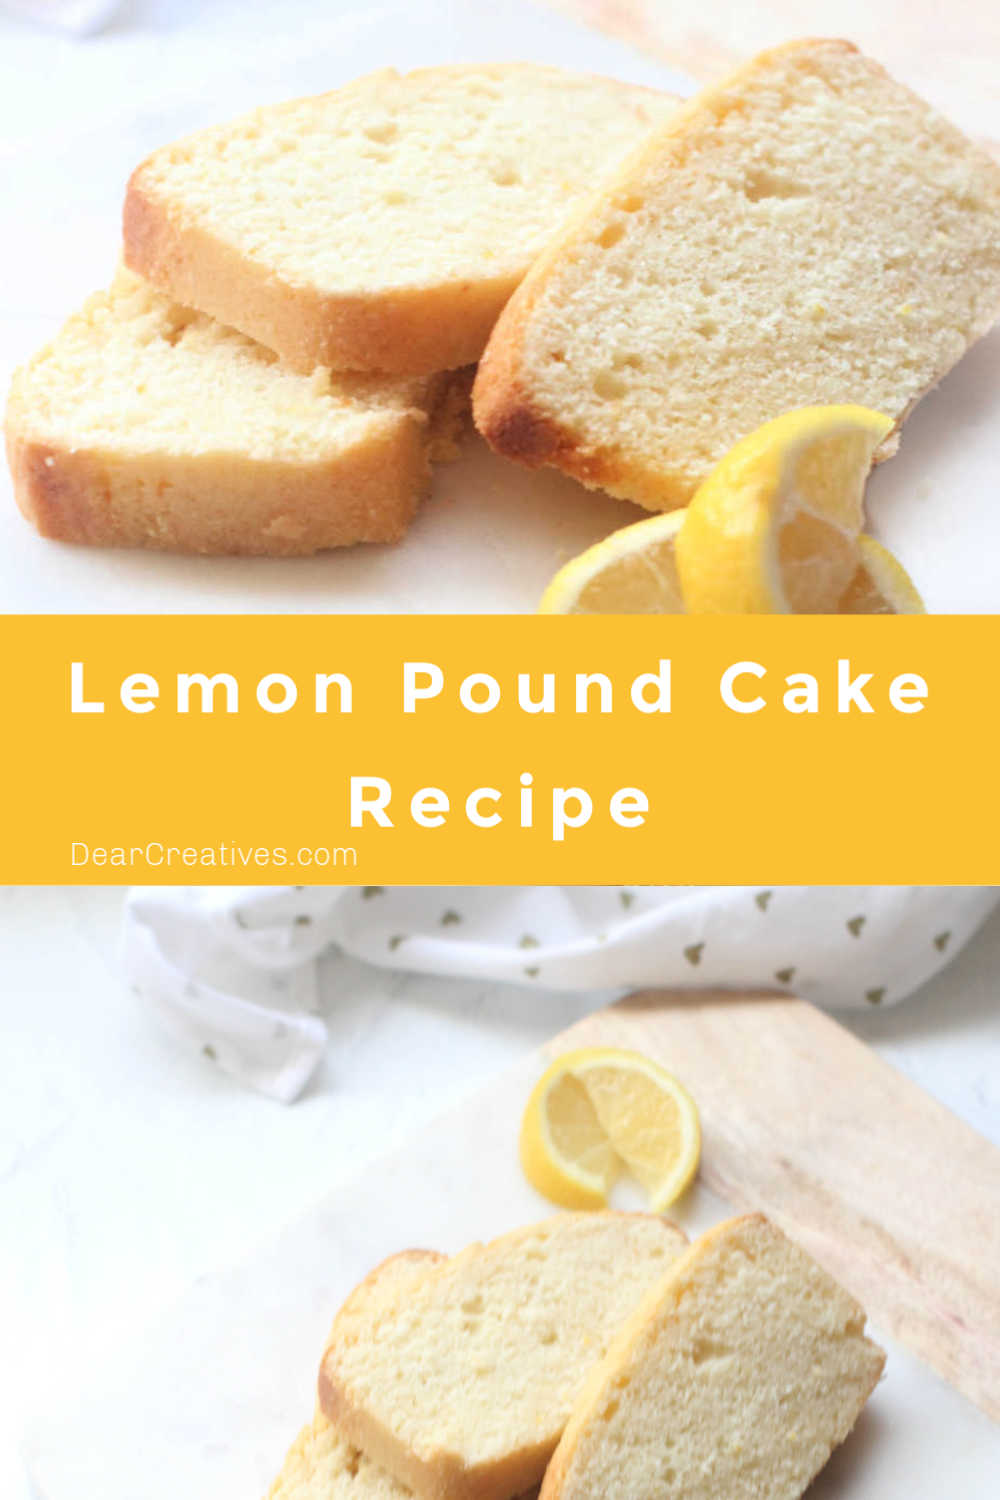 Lemon Pound Cake Recipe is easy to make, bake. The hardest part is waiting for the lemon loaf to cool before cutting it. Of course, if you don't have fresh lemons you can purchase bottled lemon juice. Perfect for anytime you are craving a tasty lemon pound cake!